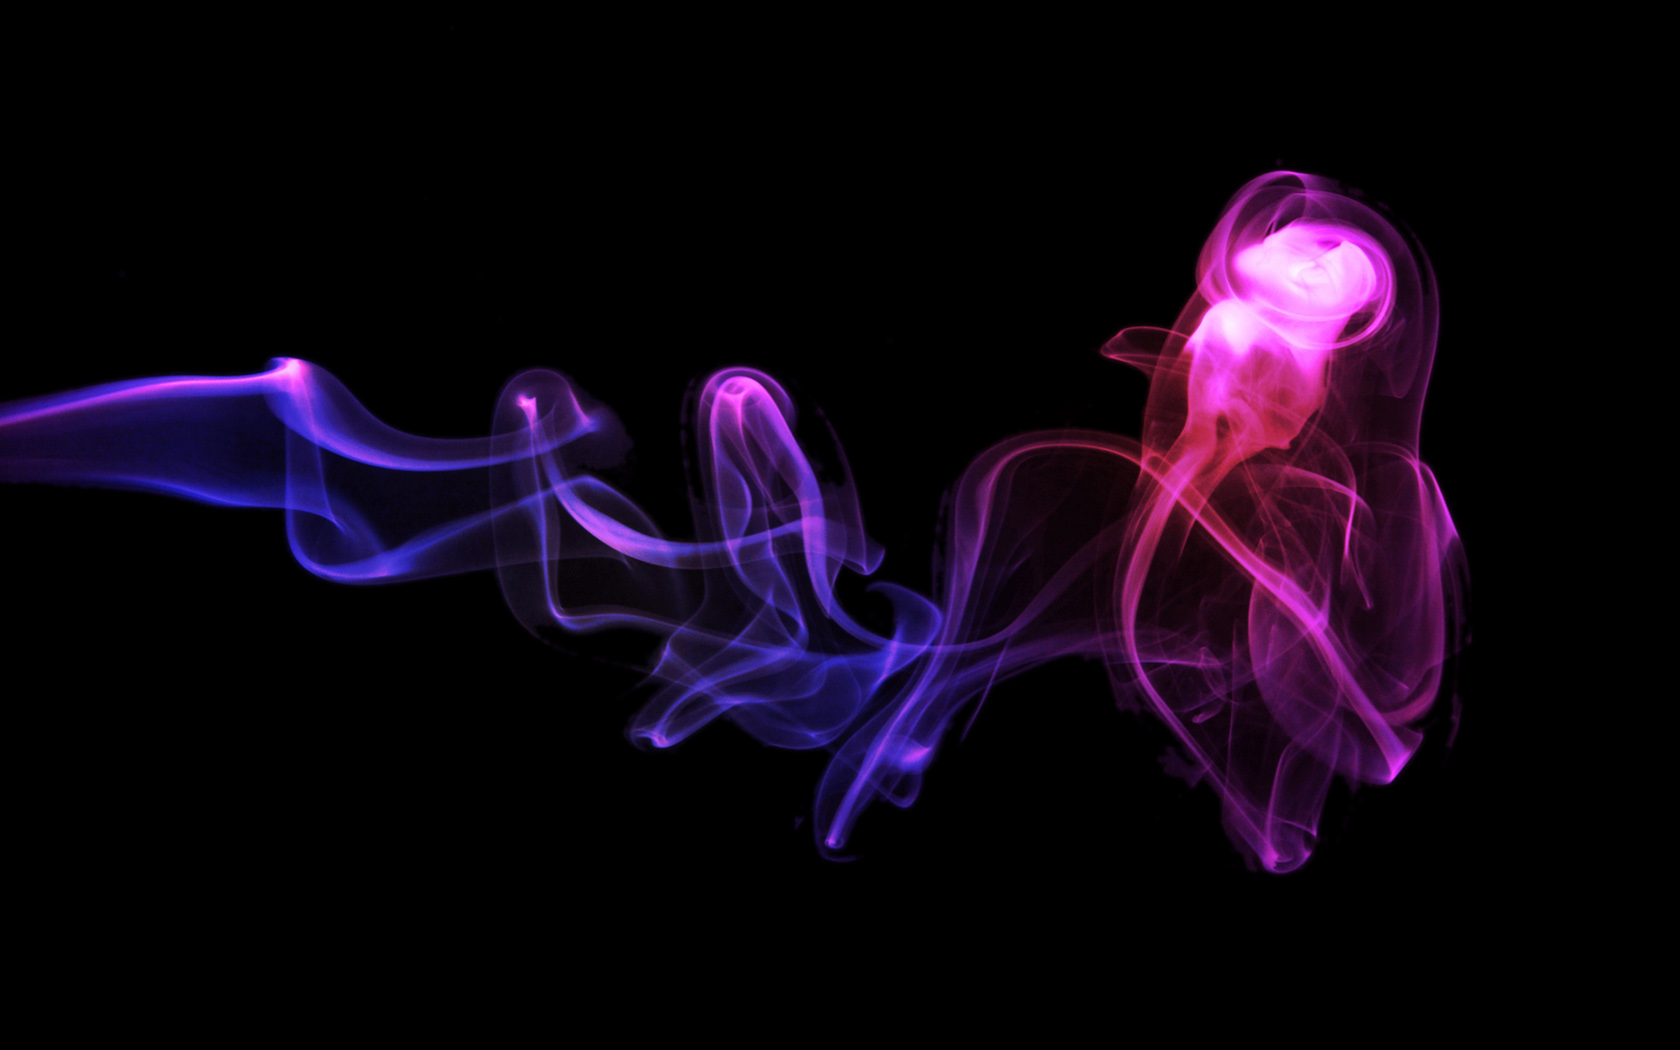 Smoke Wallpapers HD Wallpapers 1680x1050